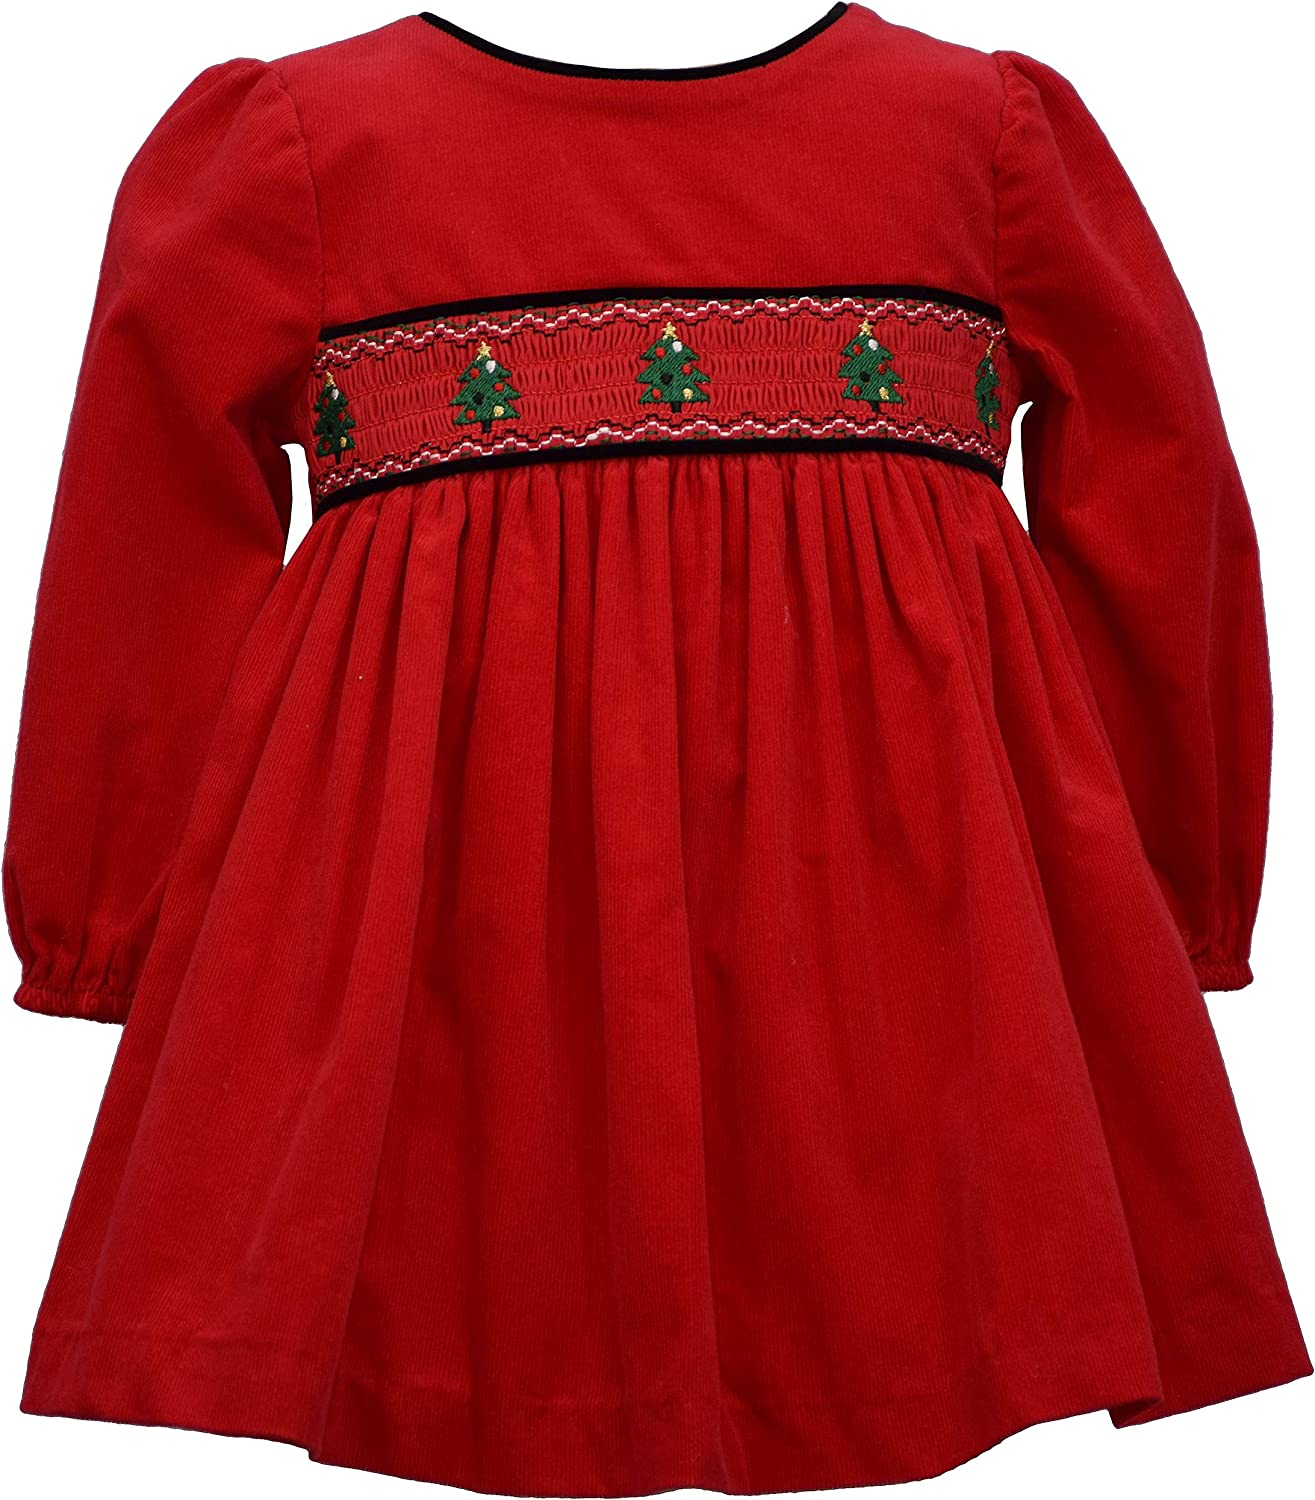 Bonnie Jean specialty shop Baby Girl's Holiday Christmas Smocked Selling and selling Dress Red Co -